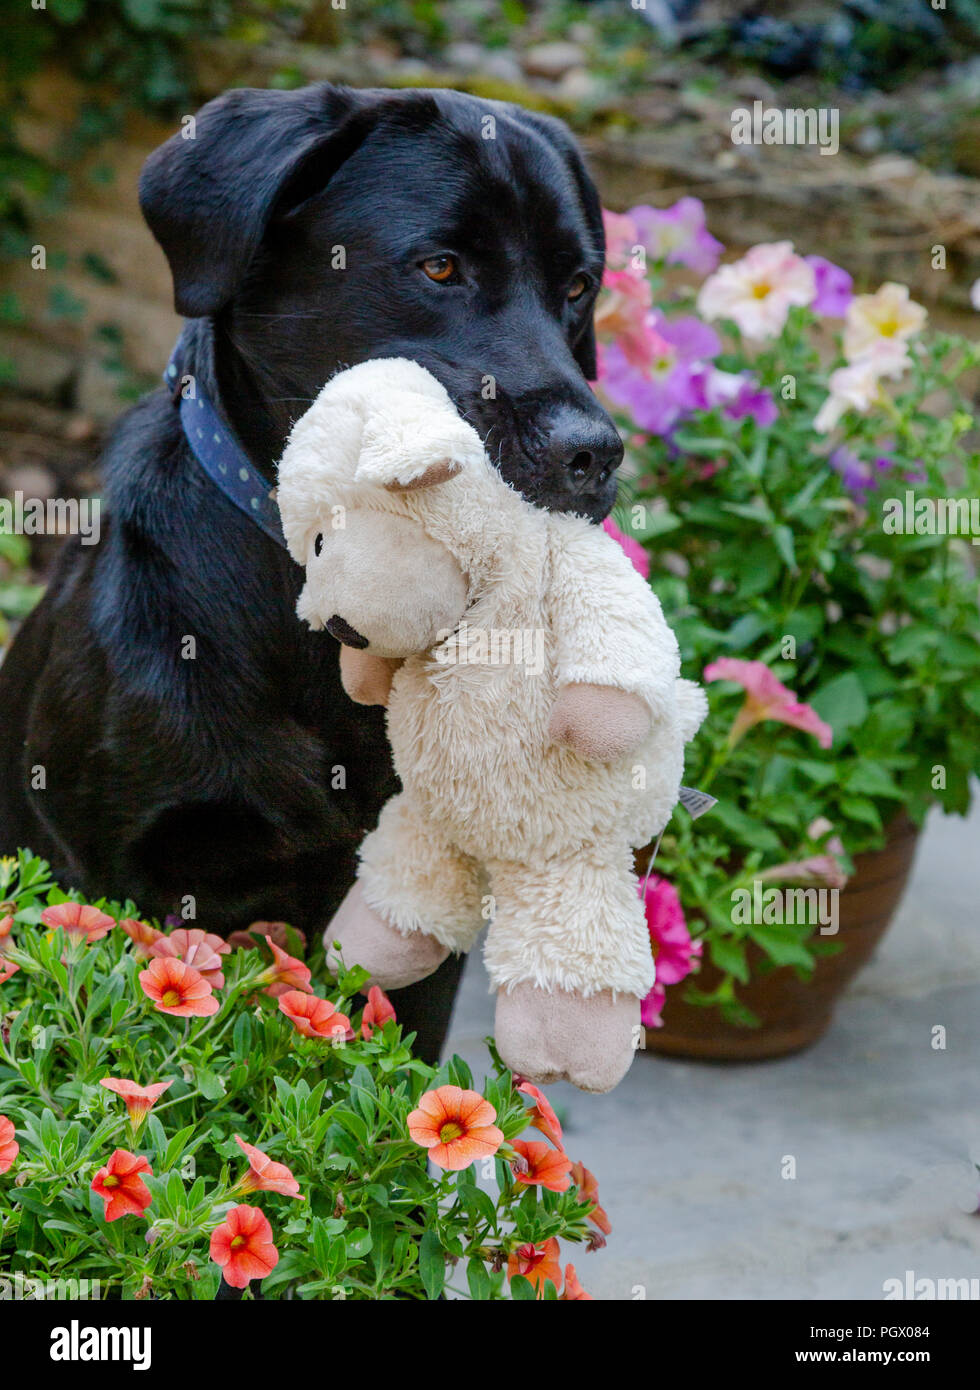 A black labrador, sitting amongst flowering garden tubs,  holds a cuddly toy in his mouth. Stock Photo